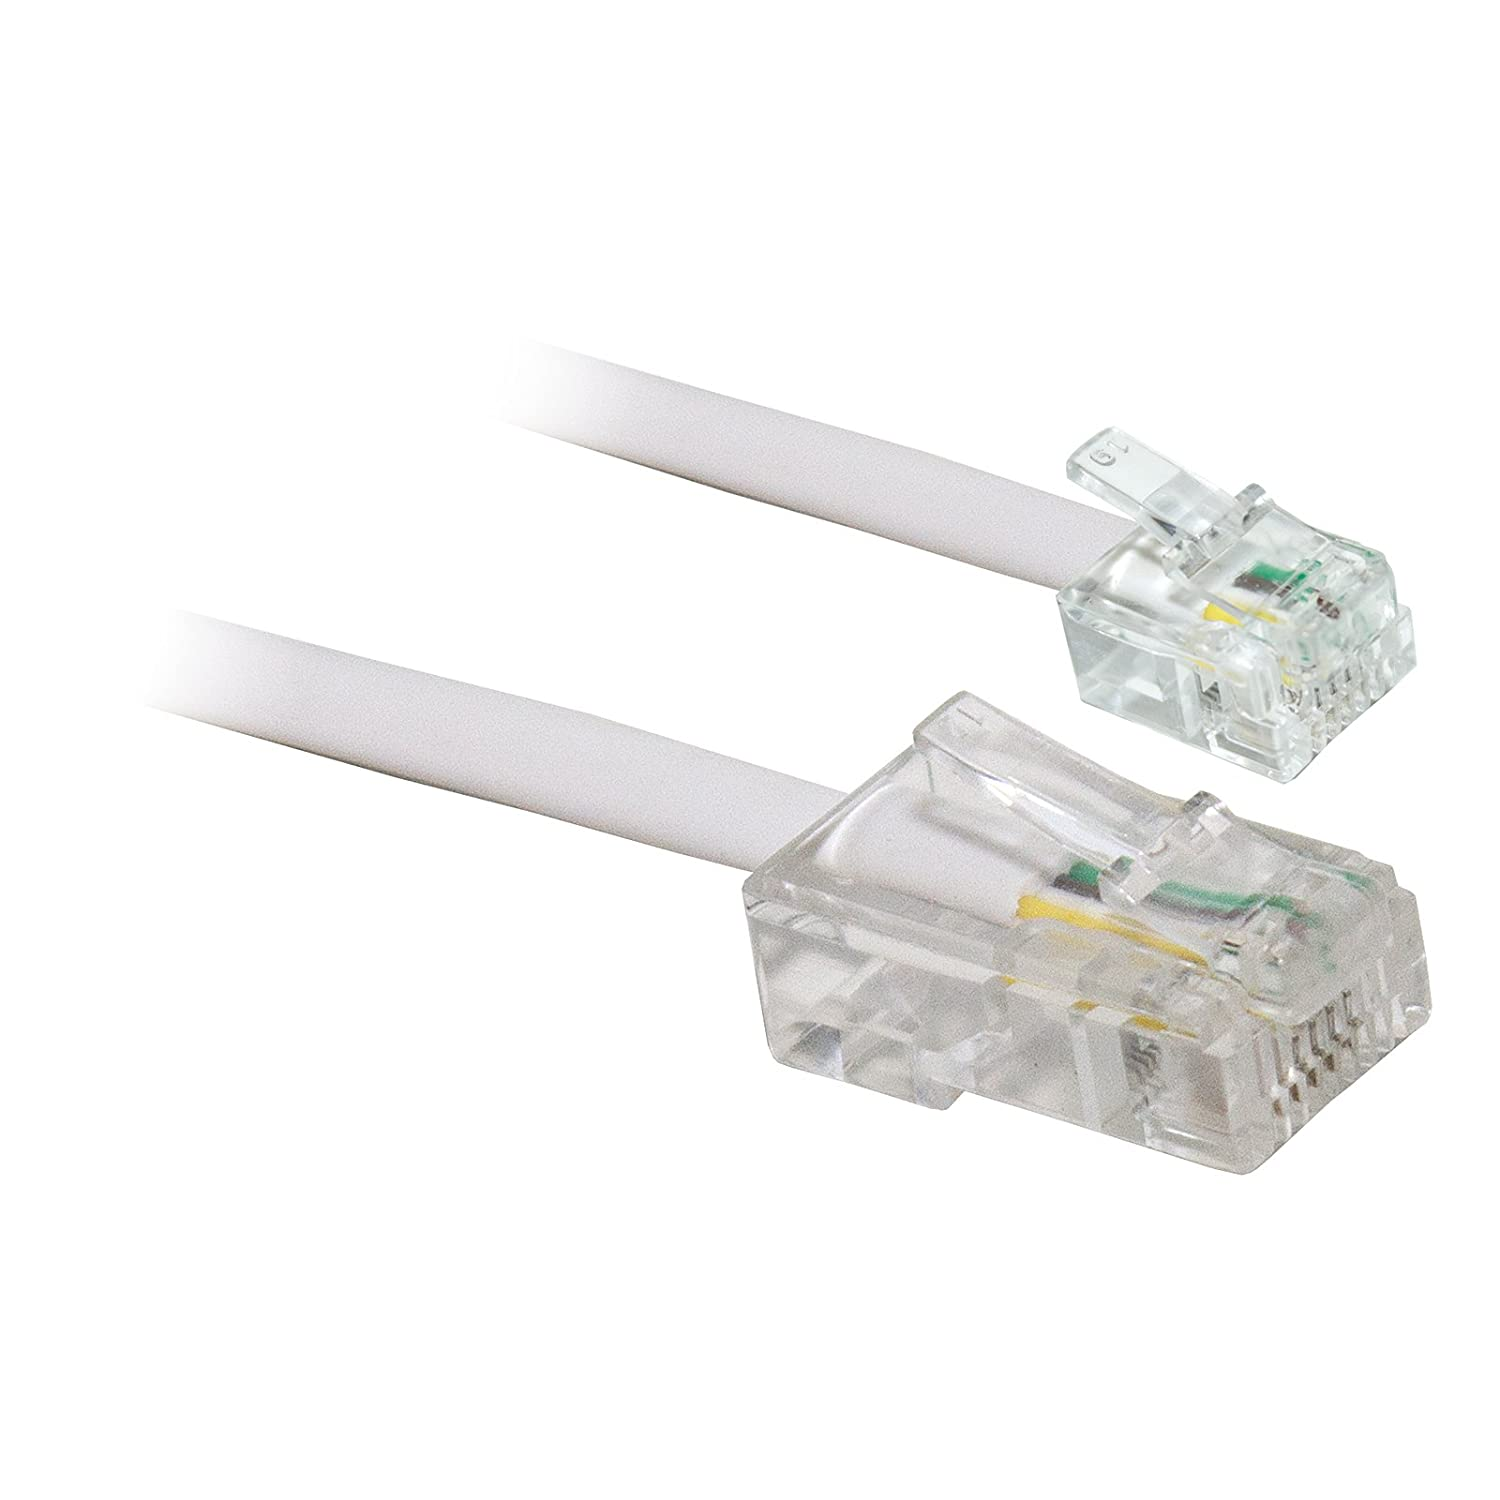 kenable 4 Wire BT Plug to RJ11 Crossover Telephone: Amazon.co.uk ...